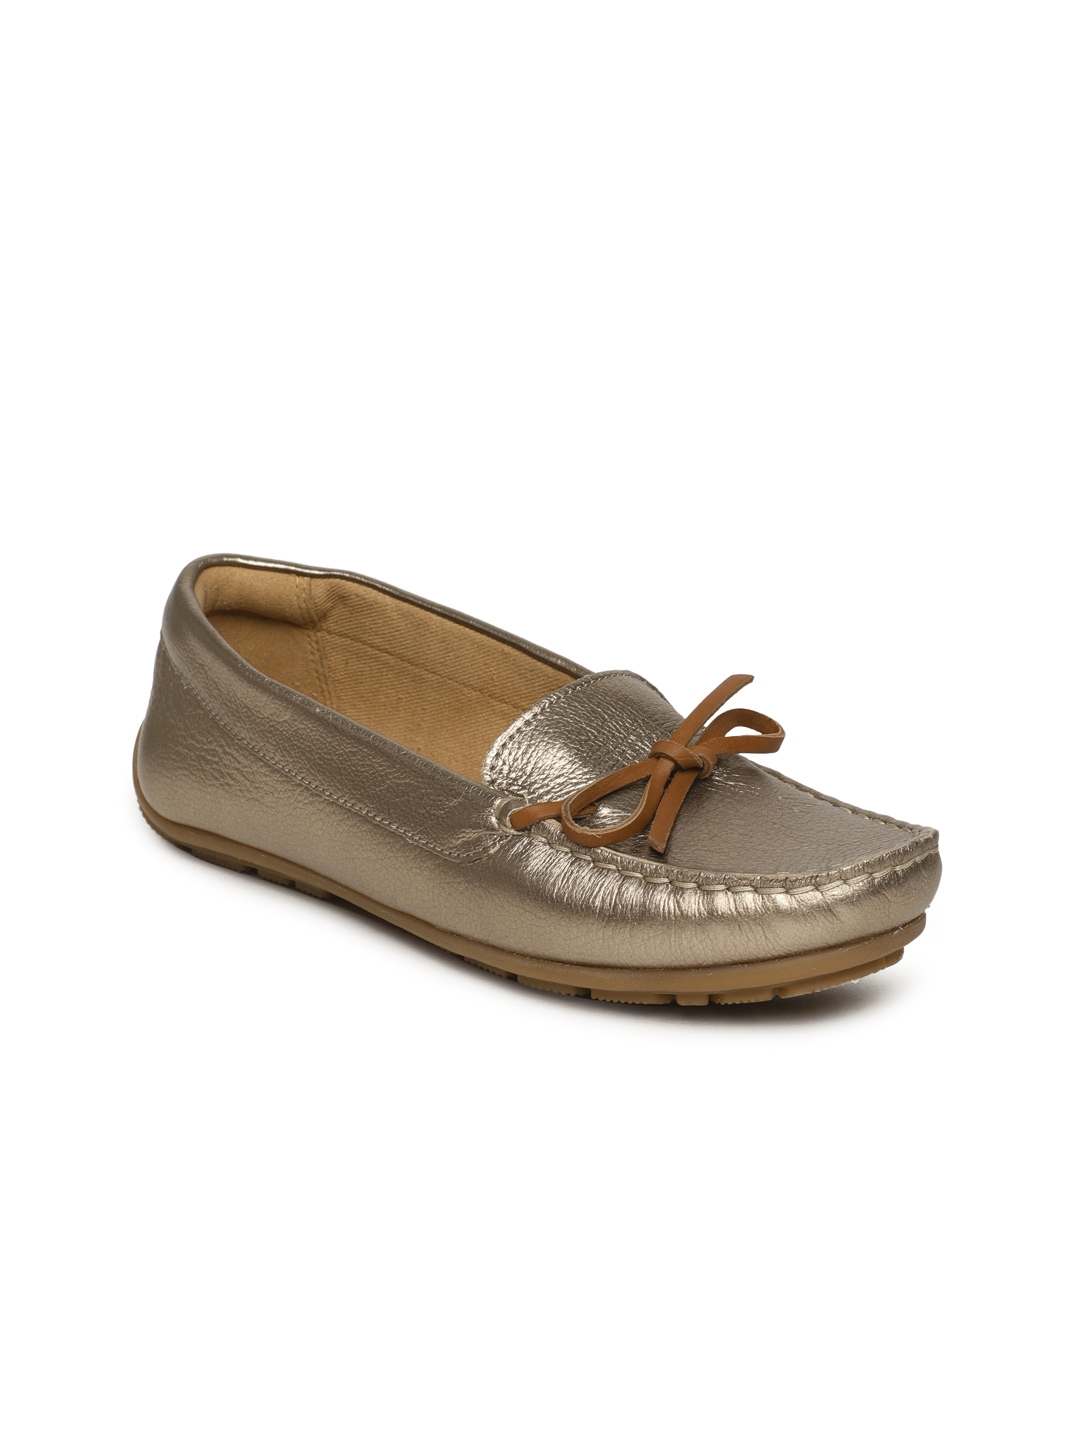 7680f47f7cd5 Buy Clarks Women Bronze Toned Dameo Swing Leather Loafers - Casual ...